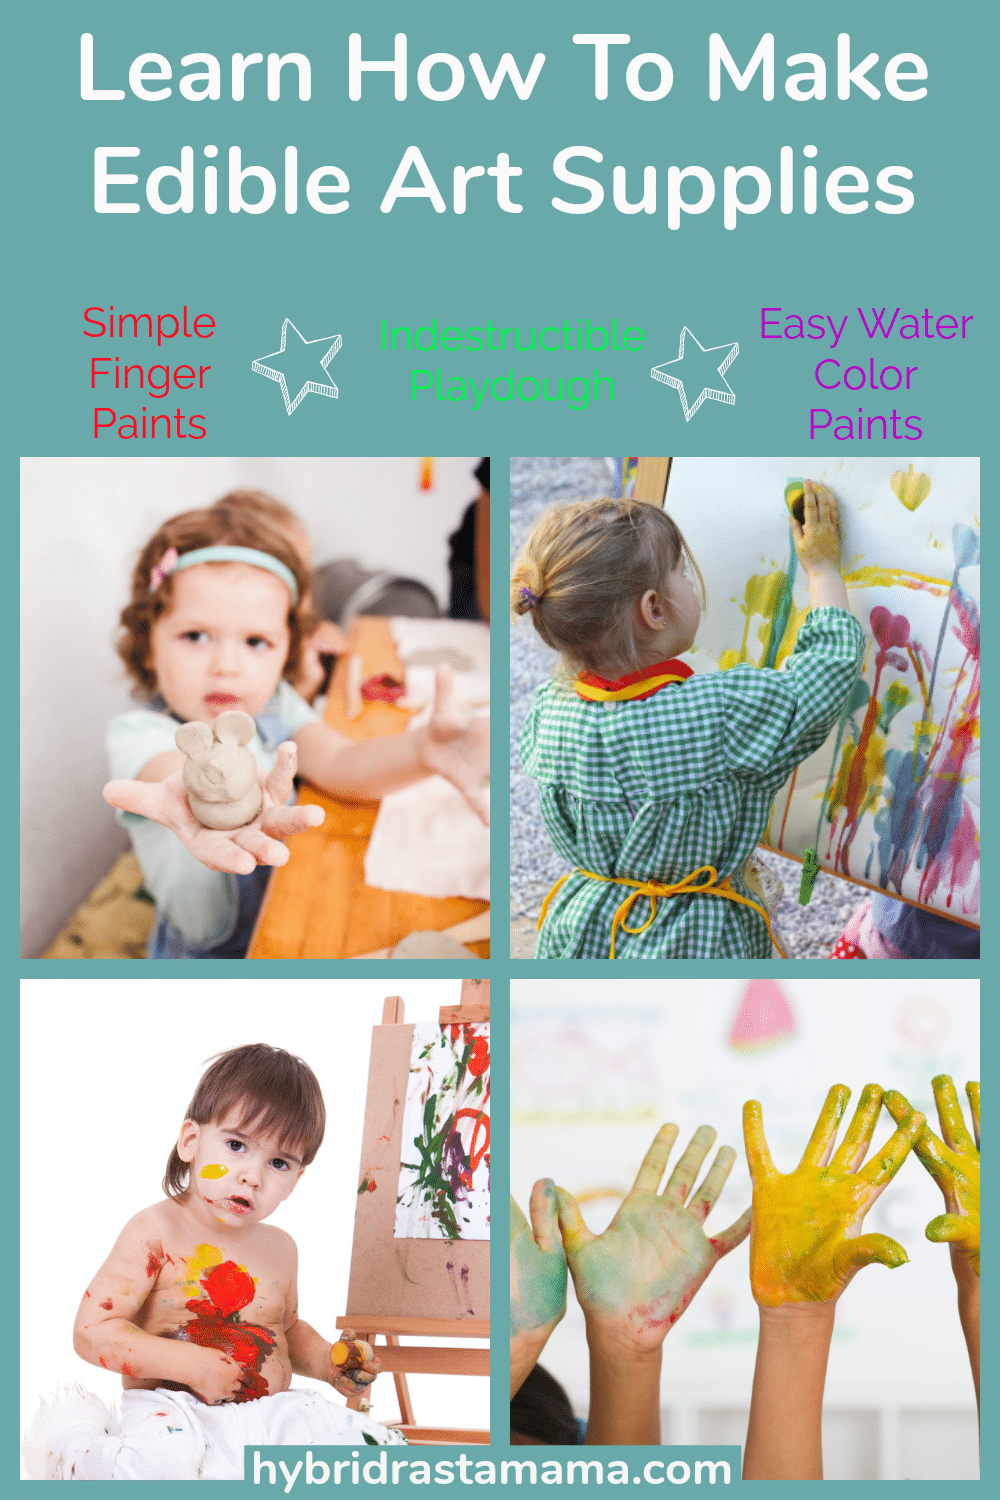 A collage of children using edible art supplies including homemade playdough, fingerpaints, and watercolor paints all made with natural food dye.